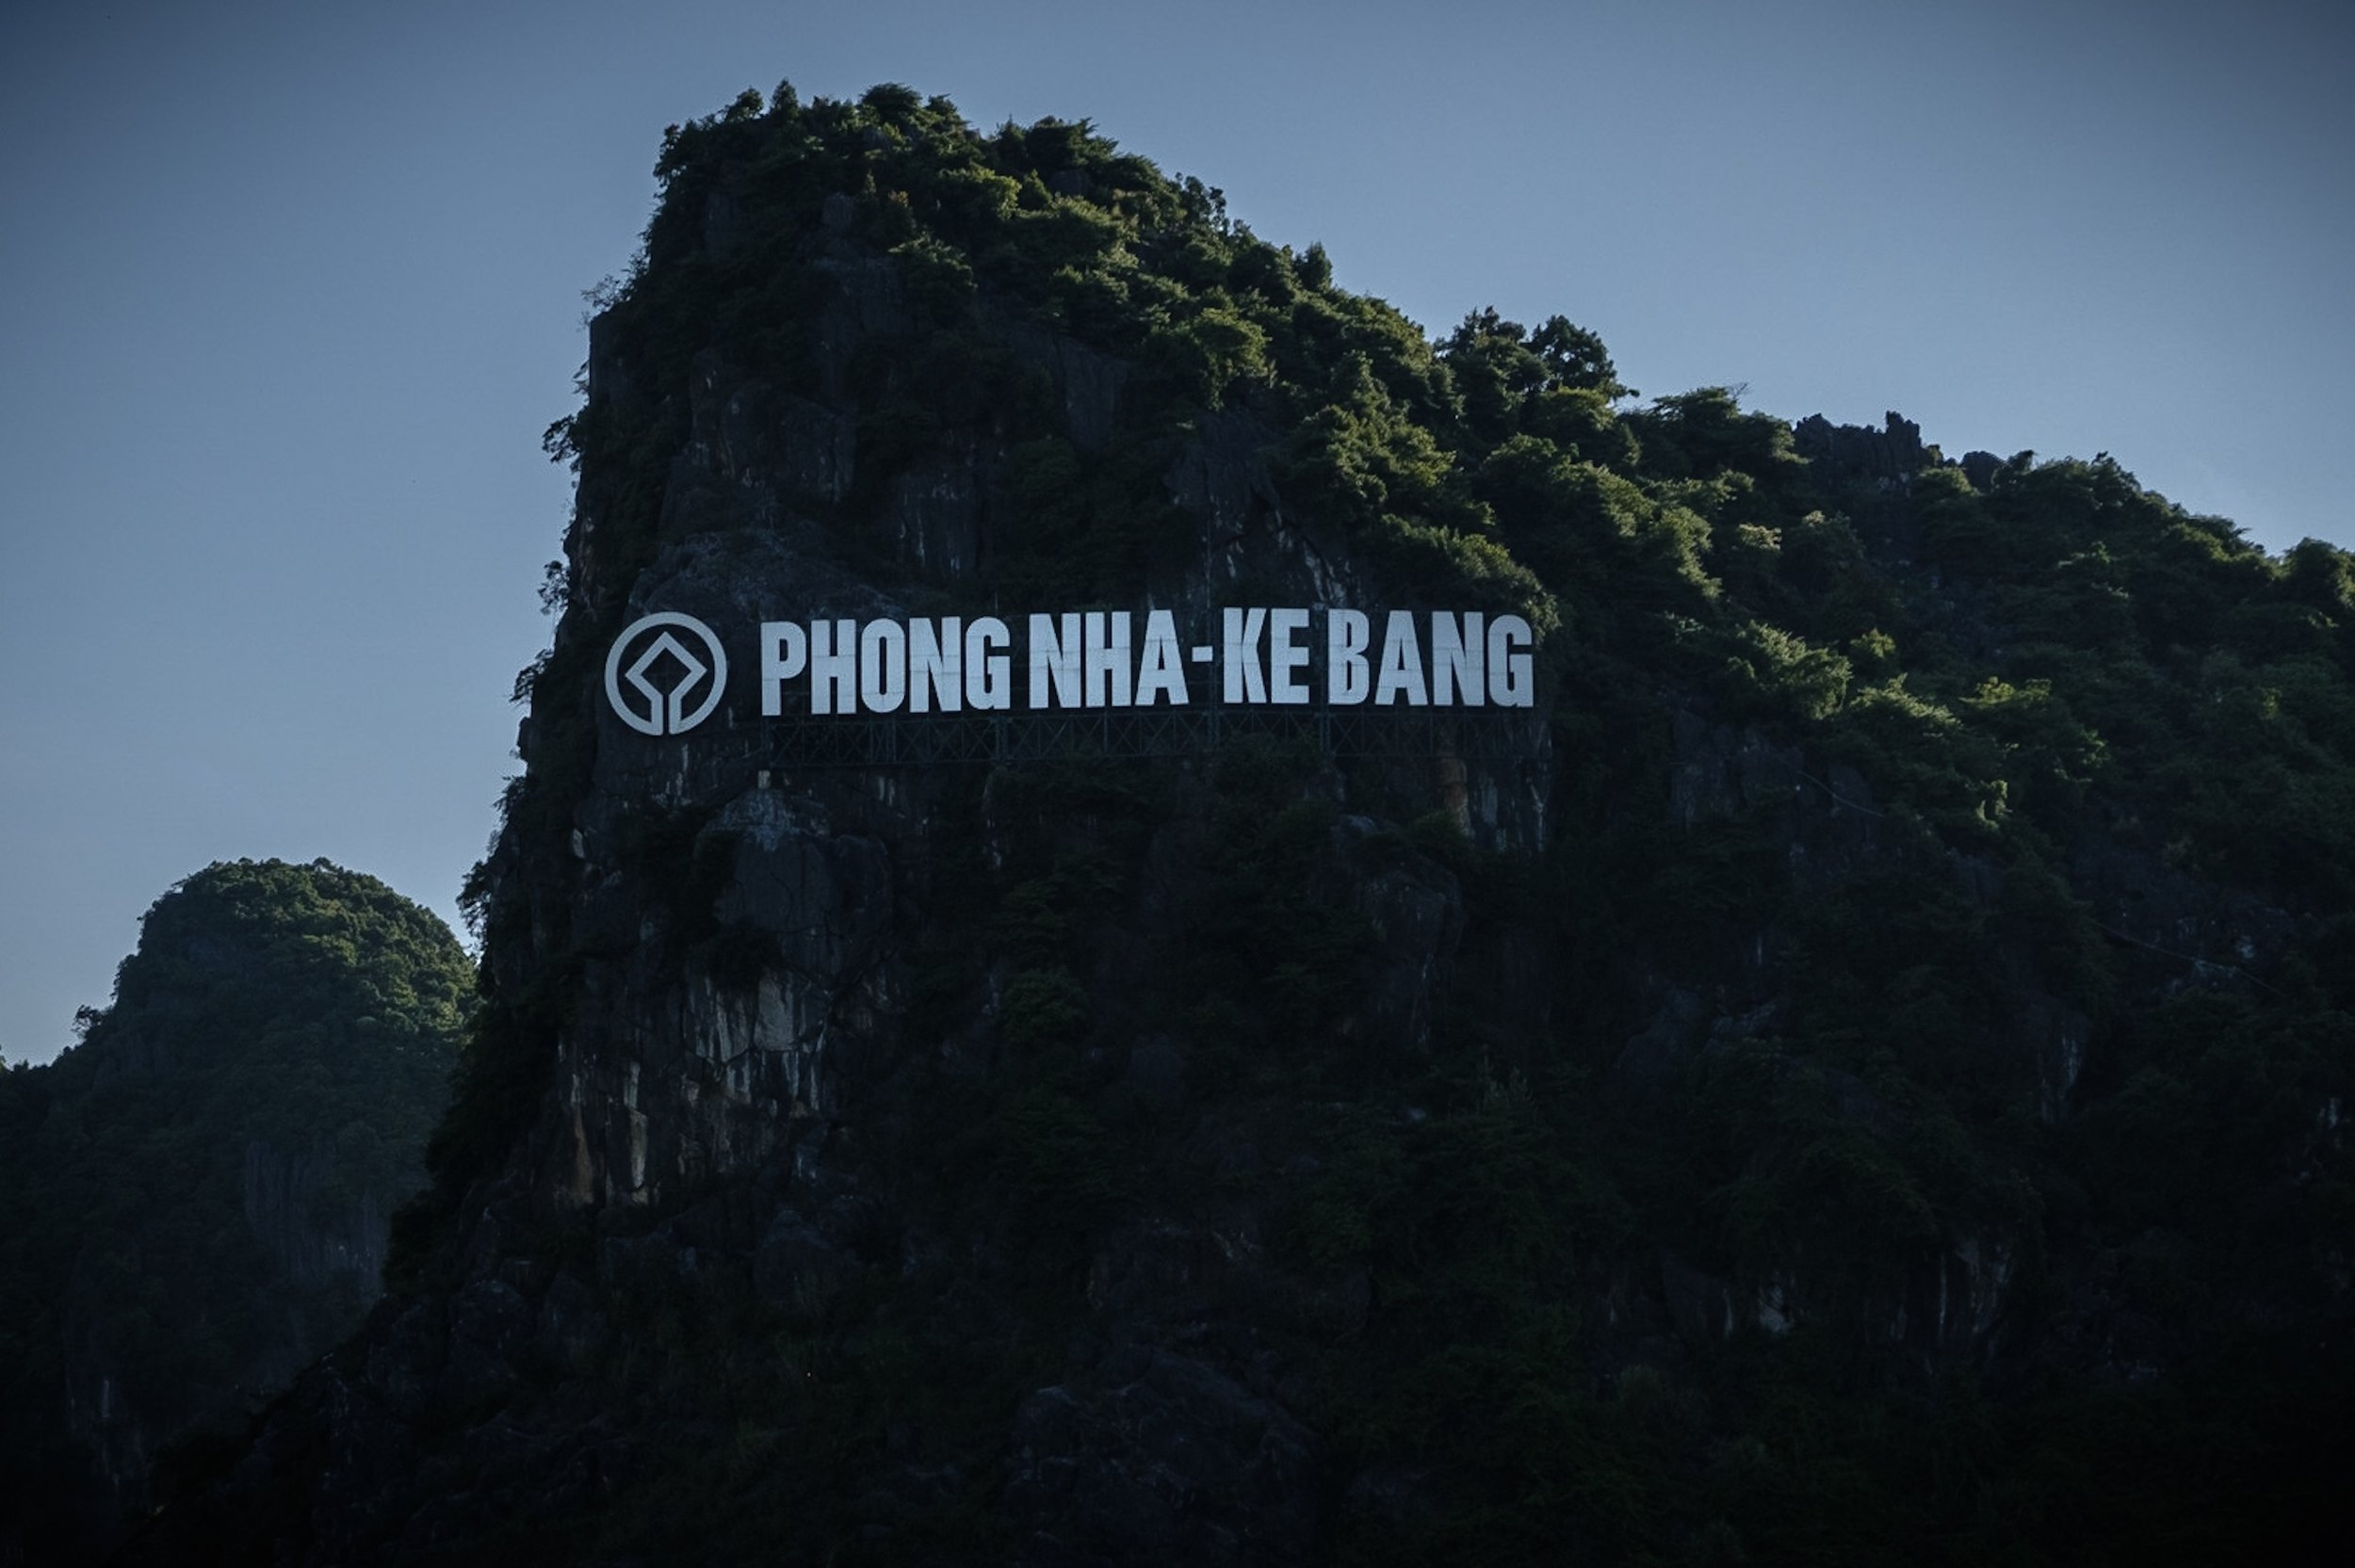 G: Arrival in Phong Nha-Ke Bang, clearly marked with an enormous LED-sign on a mountain.